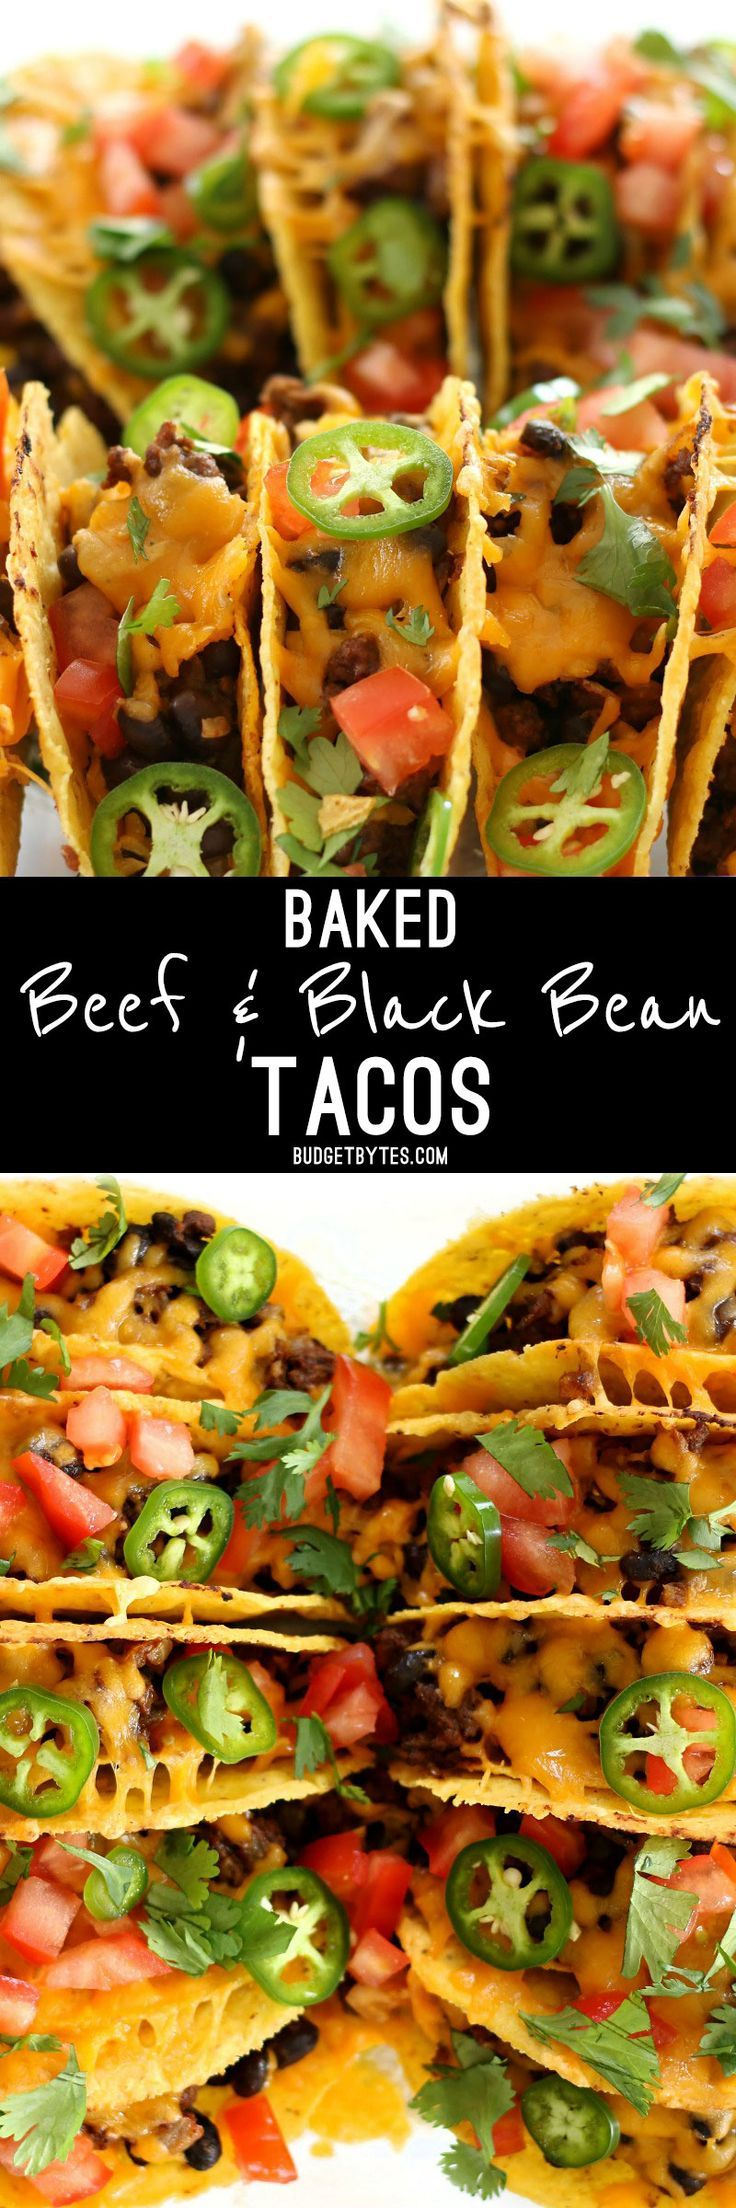 Baked Beef and Black Bean Tacos are a fast and easy way to take Taco Tuesday to the next level and is the perfect last minute weeknight meal. @budgetbytes